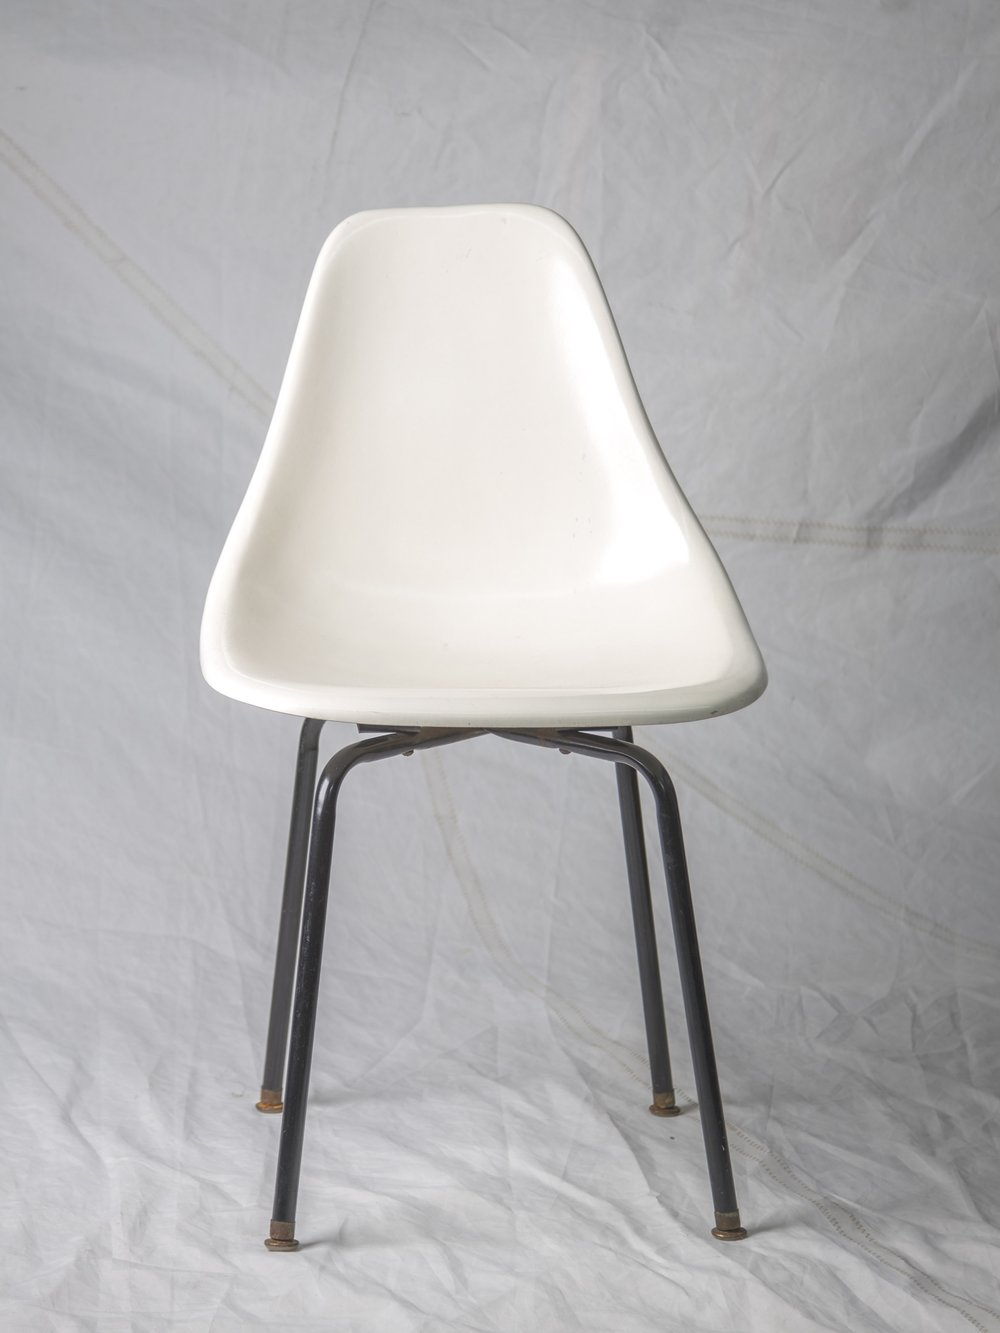 CH055  Vintage Fiberglass Shell Chair   $75/week